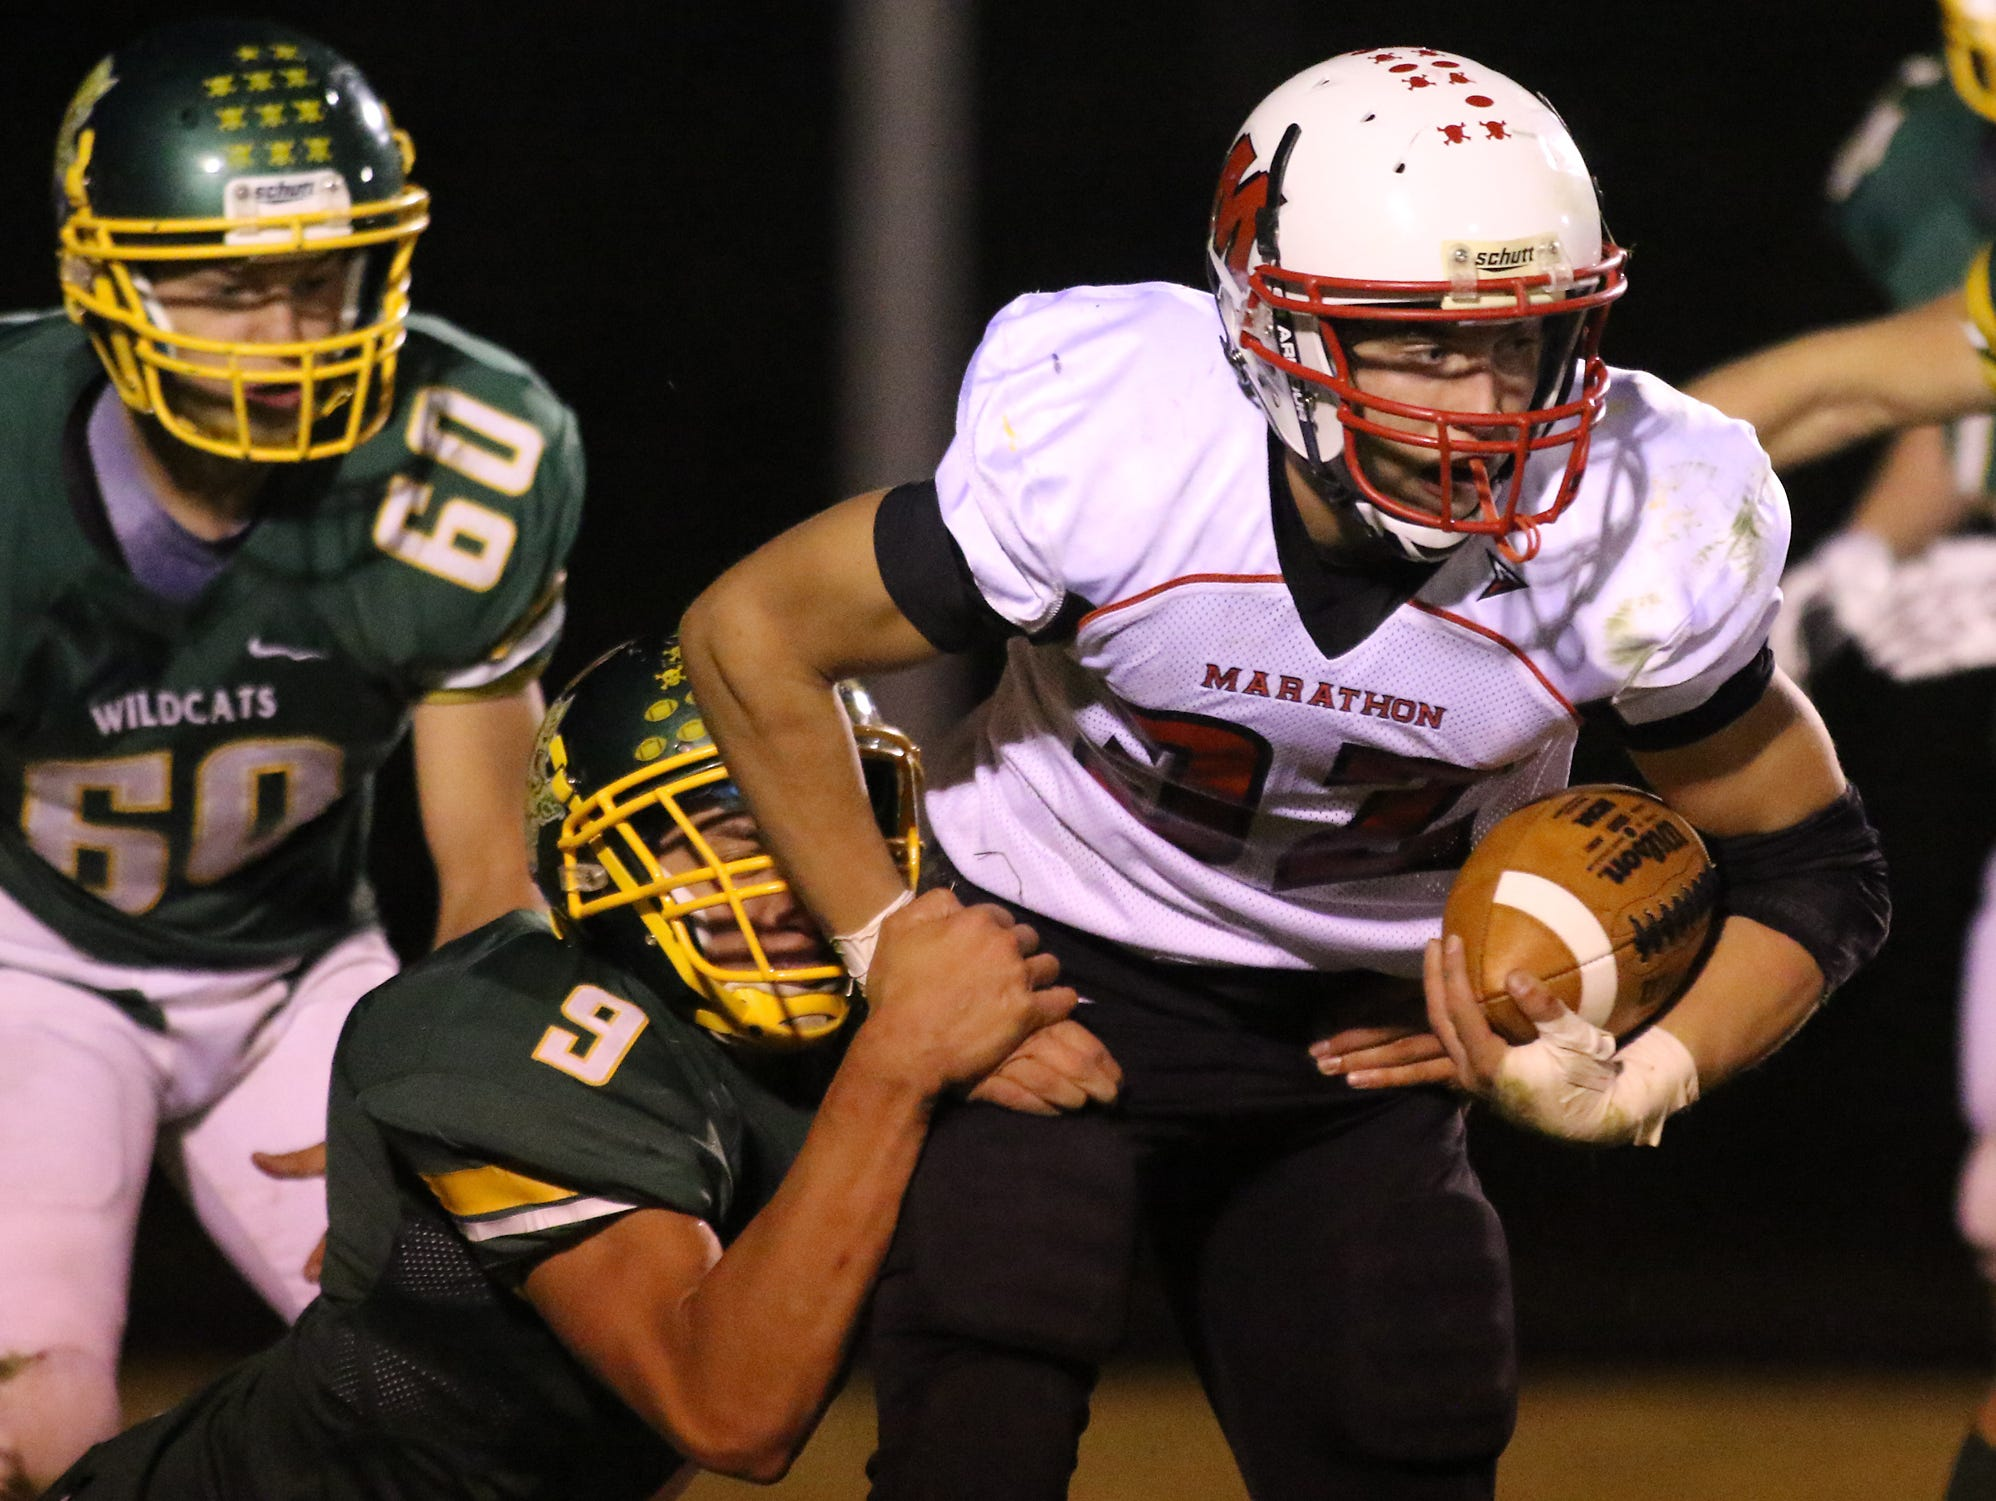 Edgar and Marathon will meet in a Division 6 Level 2 playoff game Friday, four weeks after the Raiders won the regular season matchup betrween the Marawood Conference rivals.